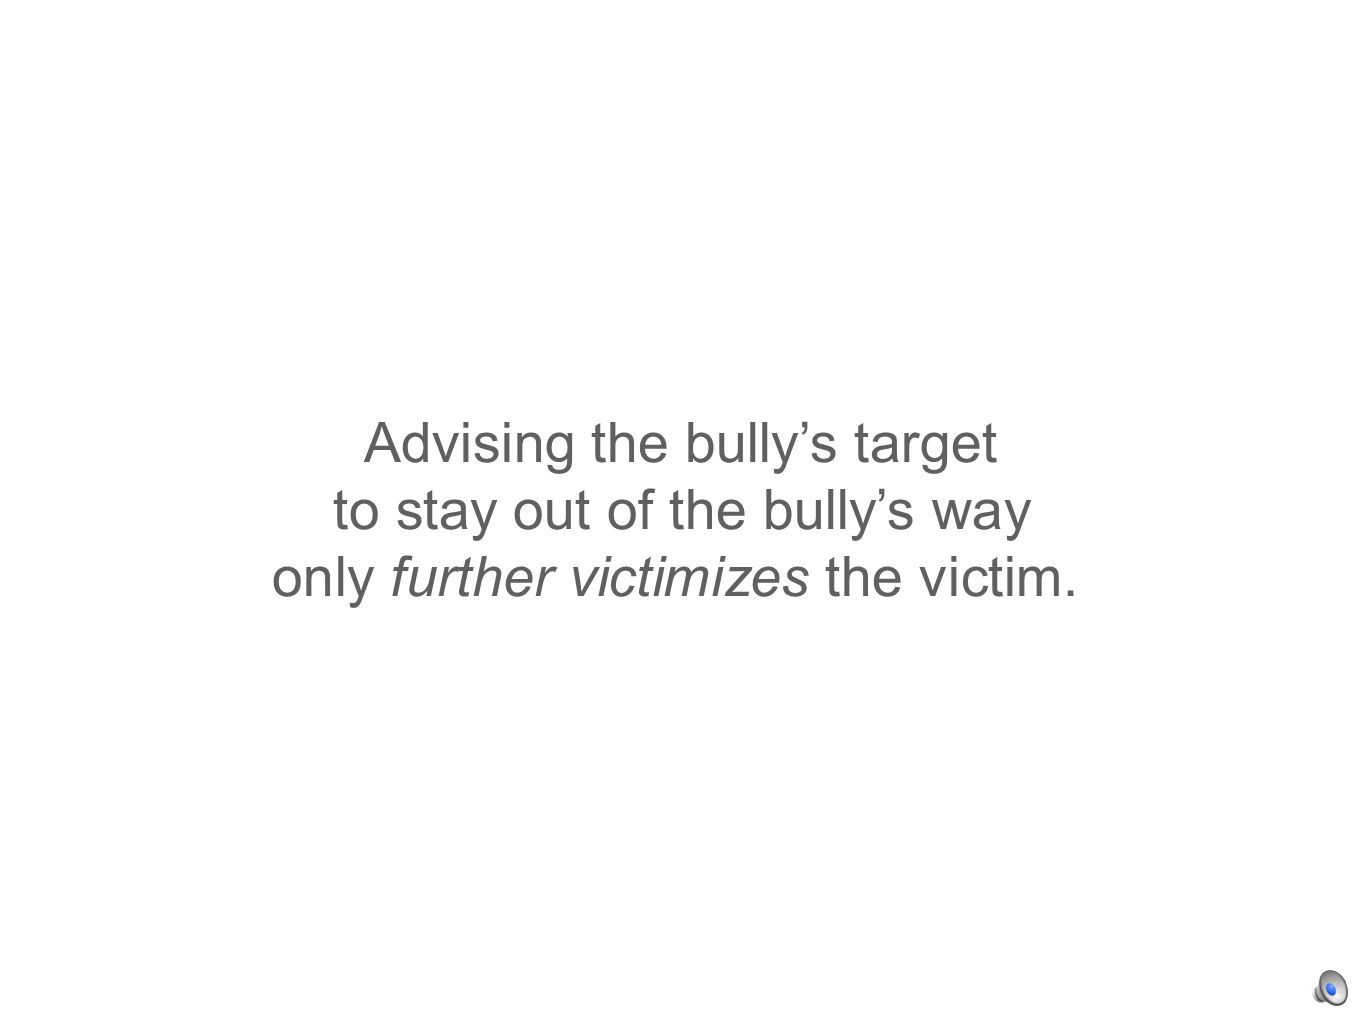 Advising the bullys target to stay out of the bullys way only further victimizes the victim.